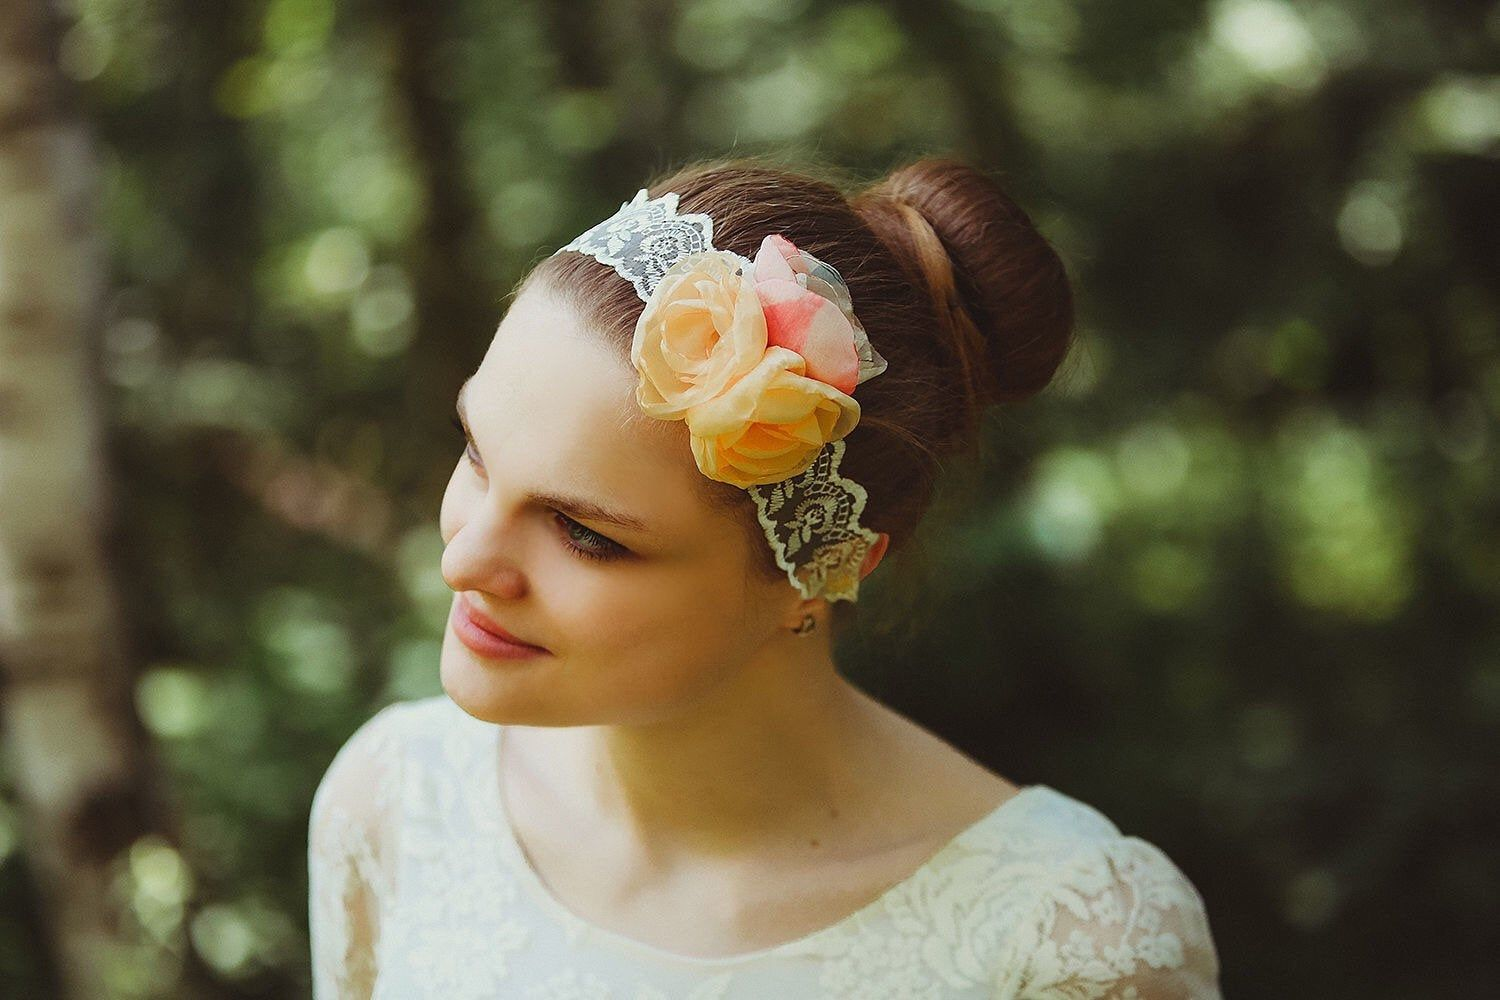 Headband with lace and flowers, Retro headband, Great Gatsby hairstyle, Present for her, Headband with roses, Wedding headband, Hippie